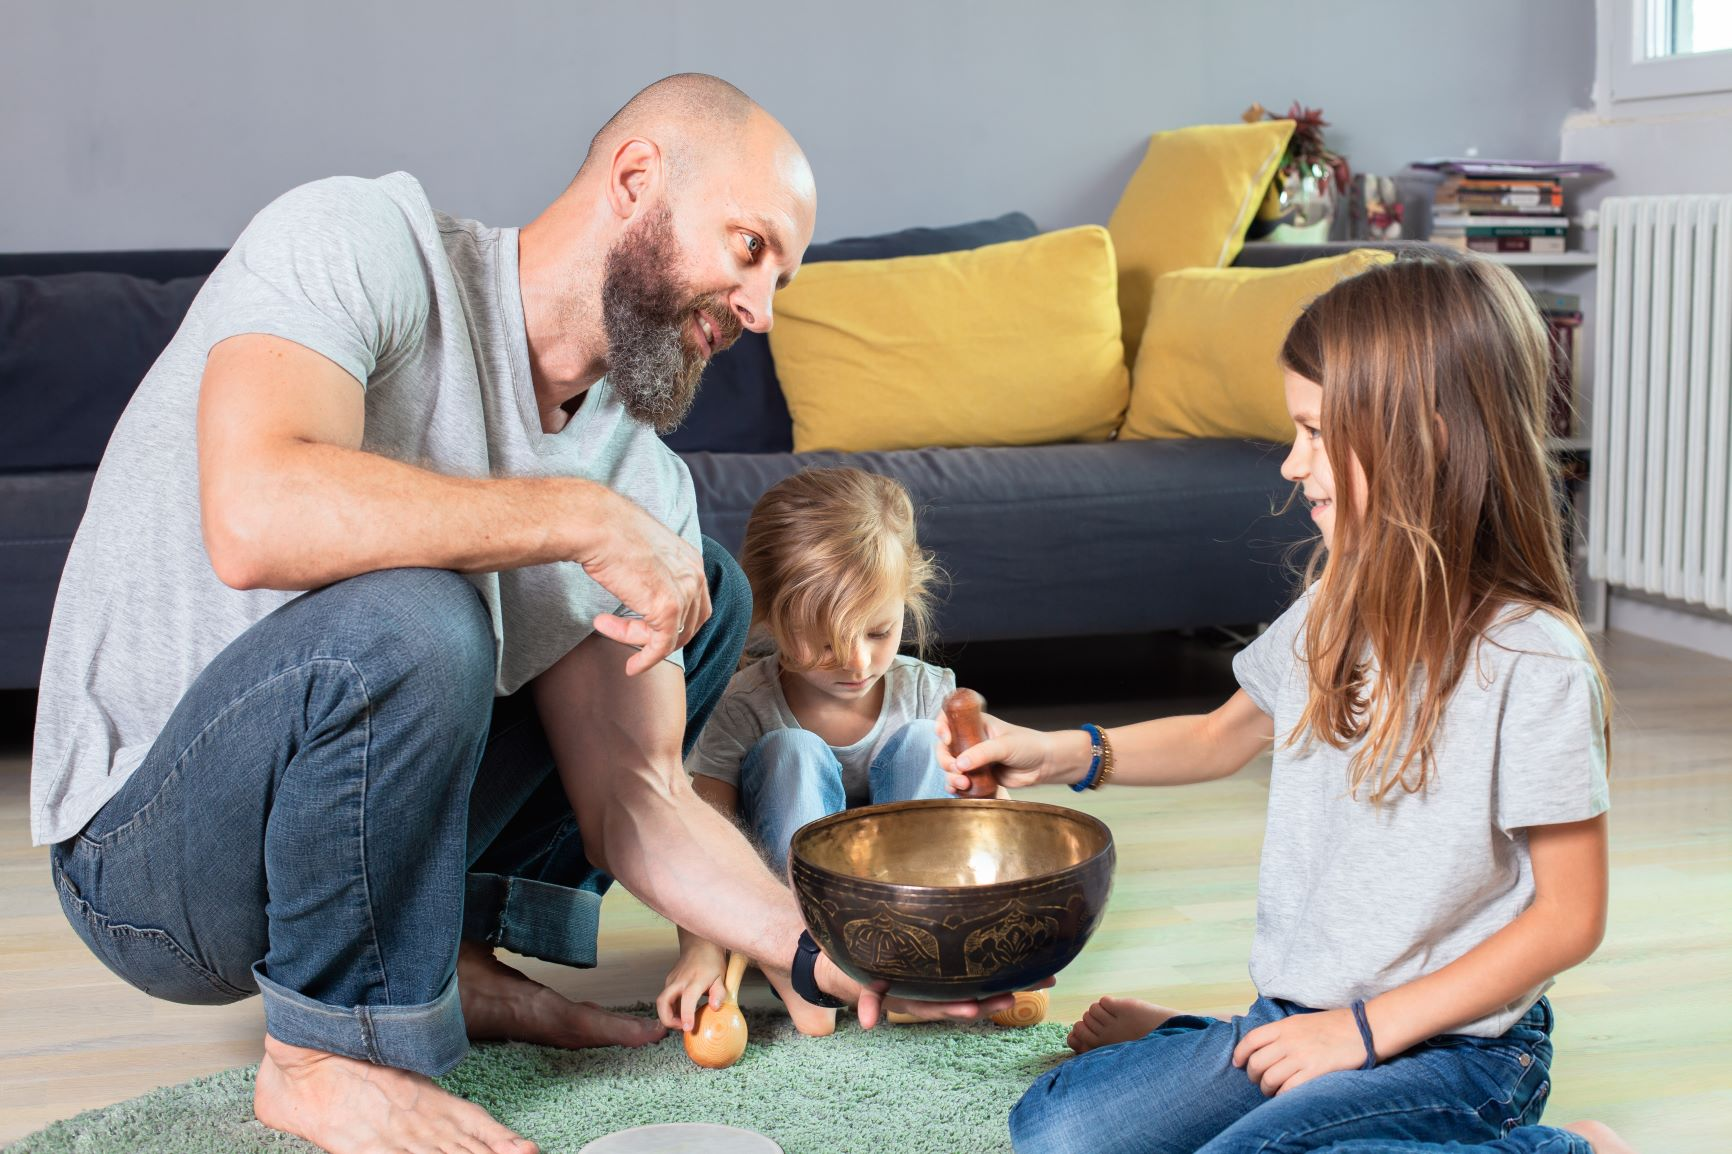 Families can explore customs and foods of other cultures at home to teach diversity and inclusion during Welcoming Week.